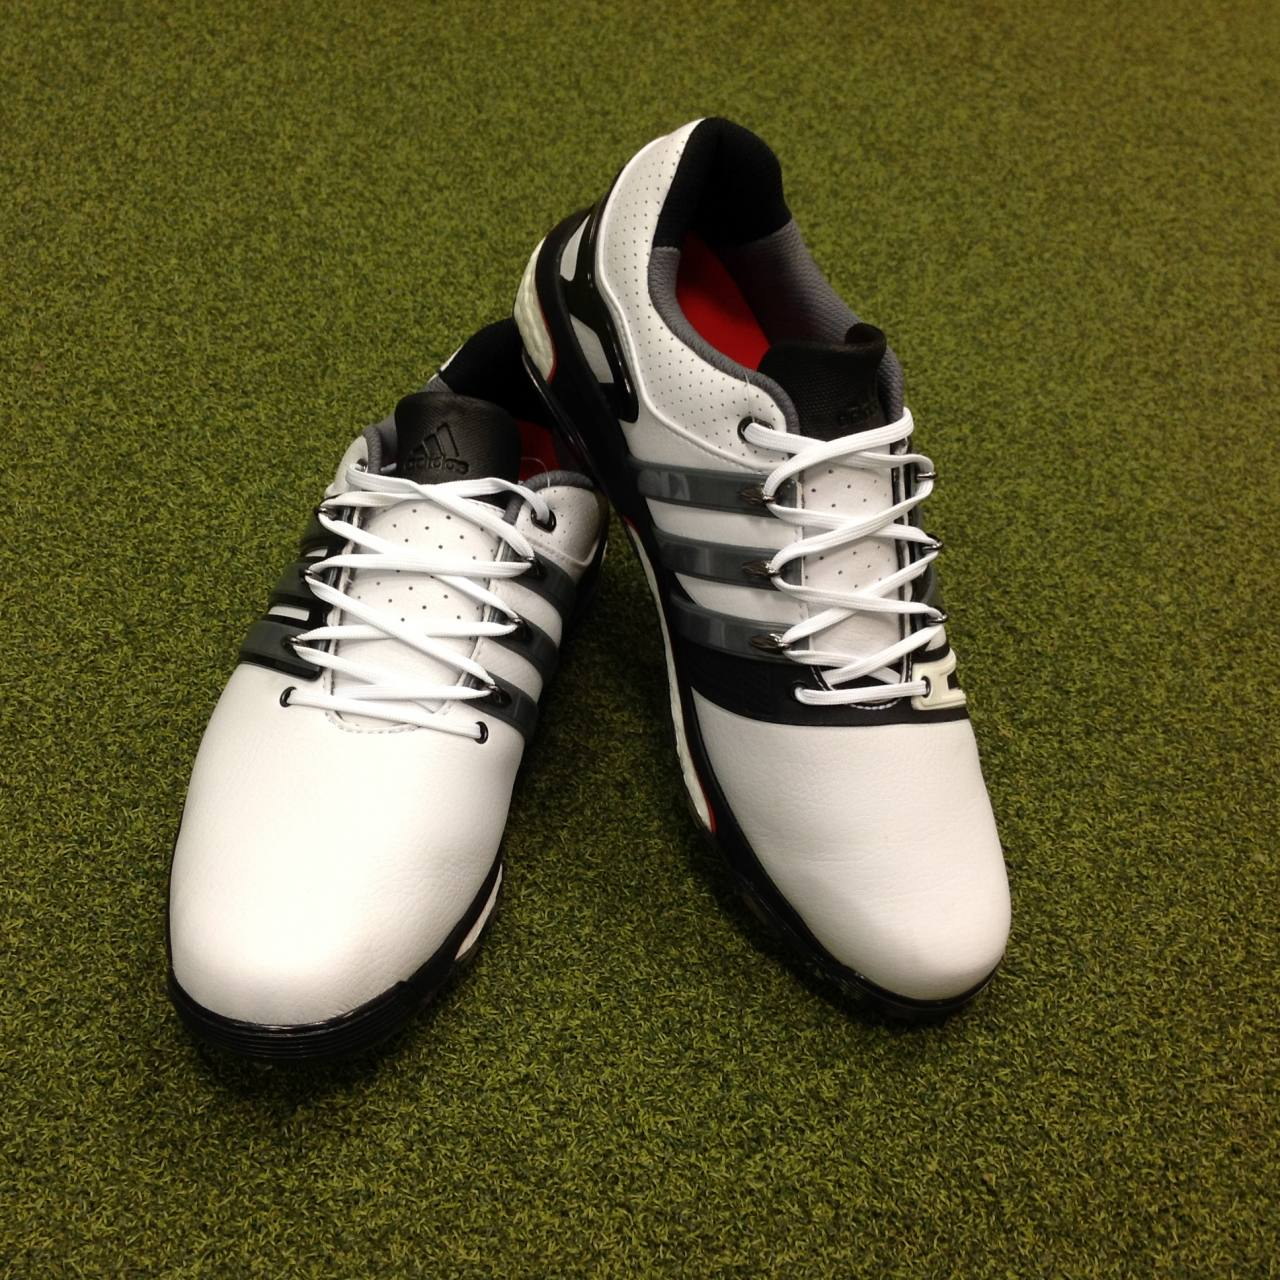 new concept 4acdb c54dd Details about NEW Adidas Asym Energy Boost Golf Shoes - UK Size 8.5 - US 9  - EU 42 23